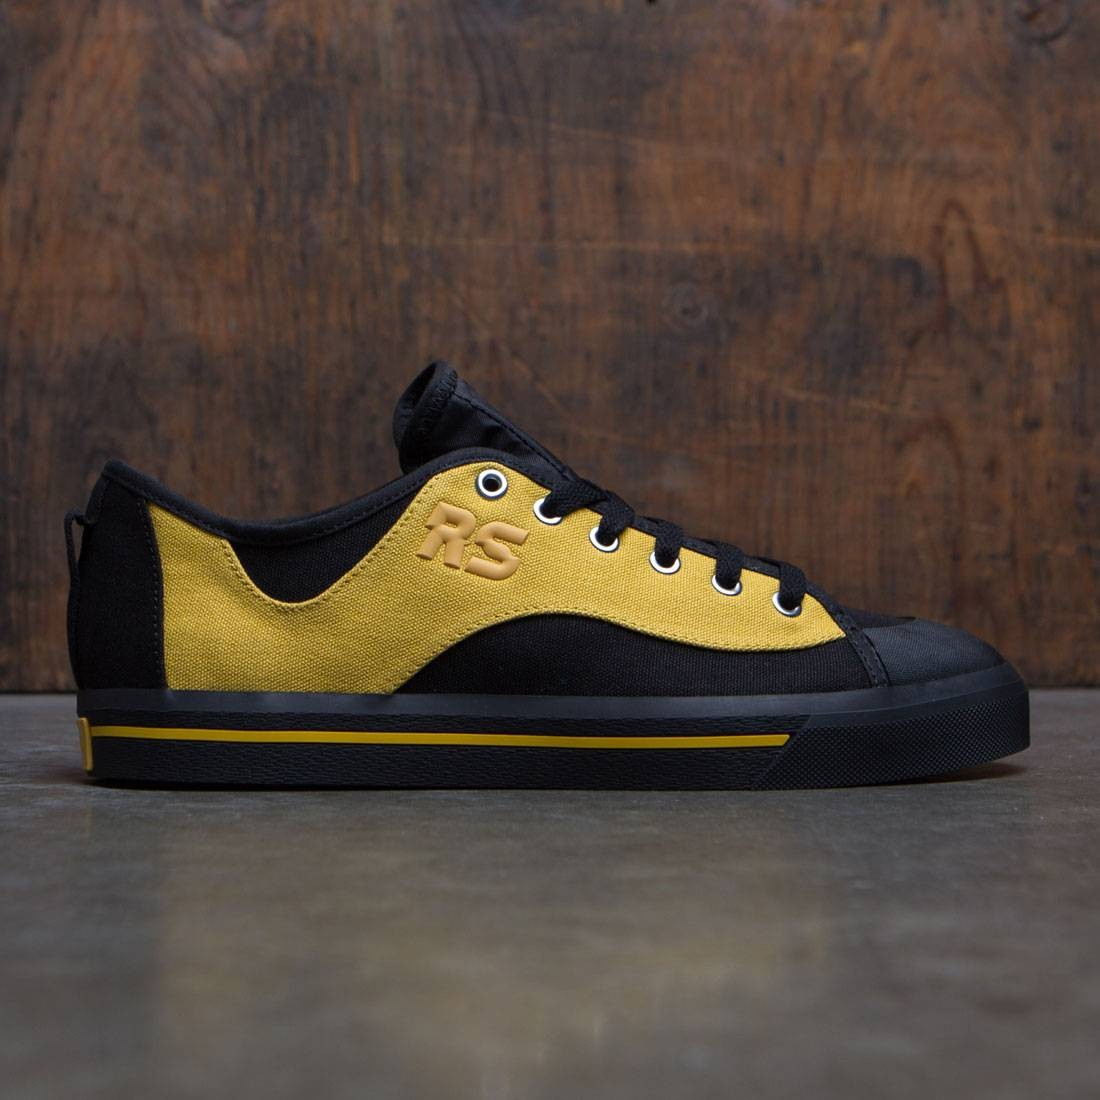 Adidas x Raf Simons Men Spirit V (black / corn yellow / core black)